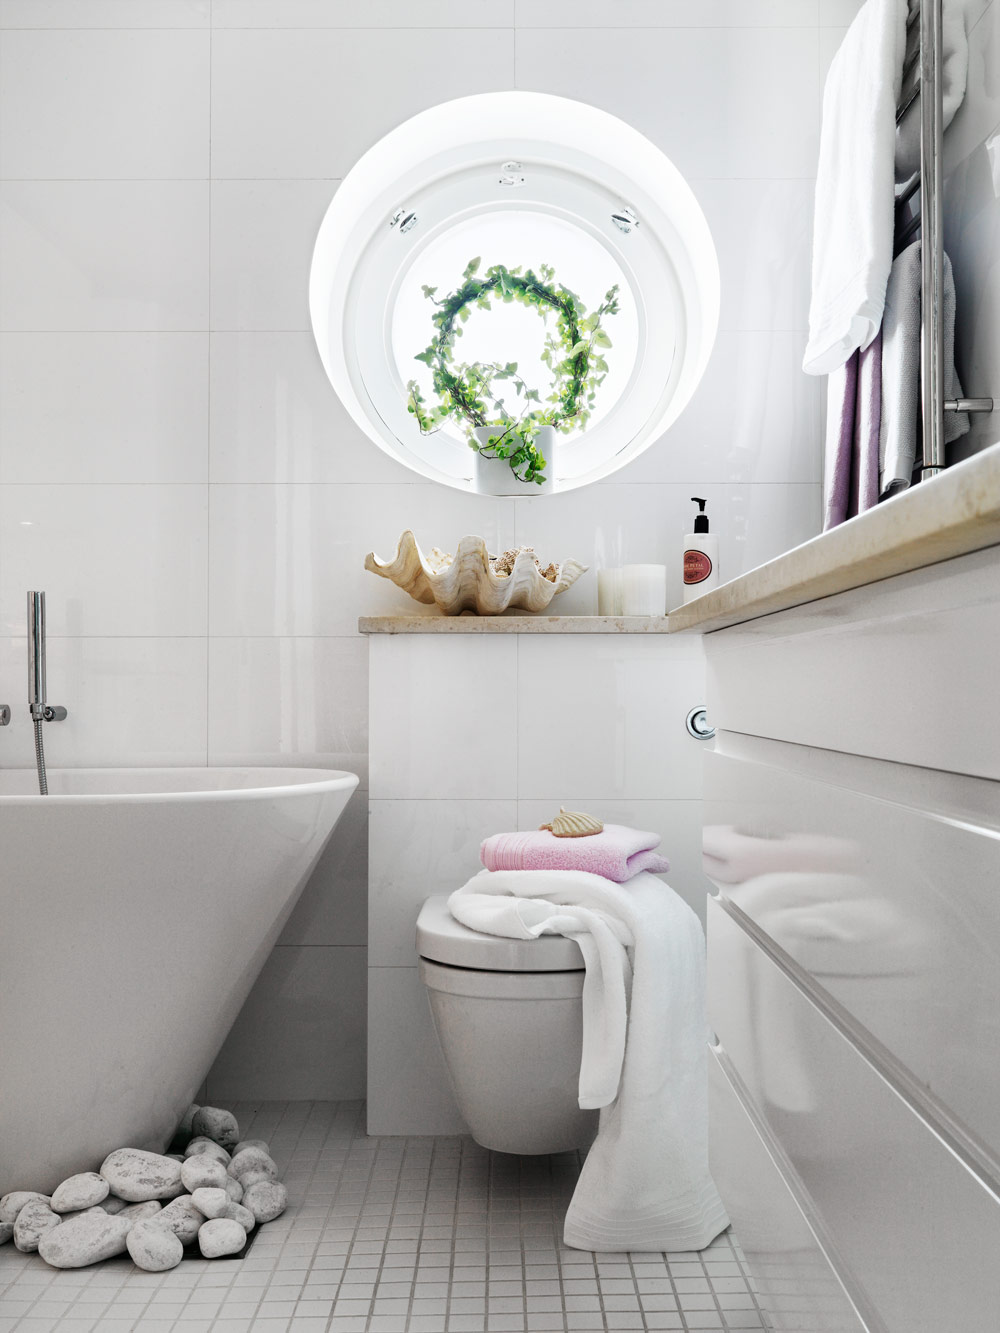 stylish small bathroom with an unusual decor | digsdigs